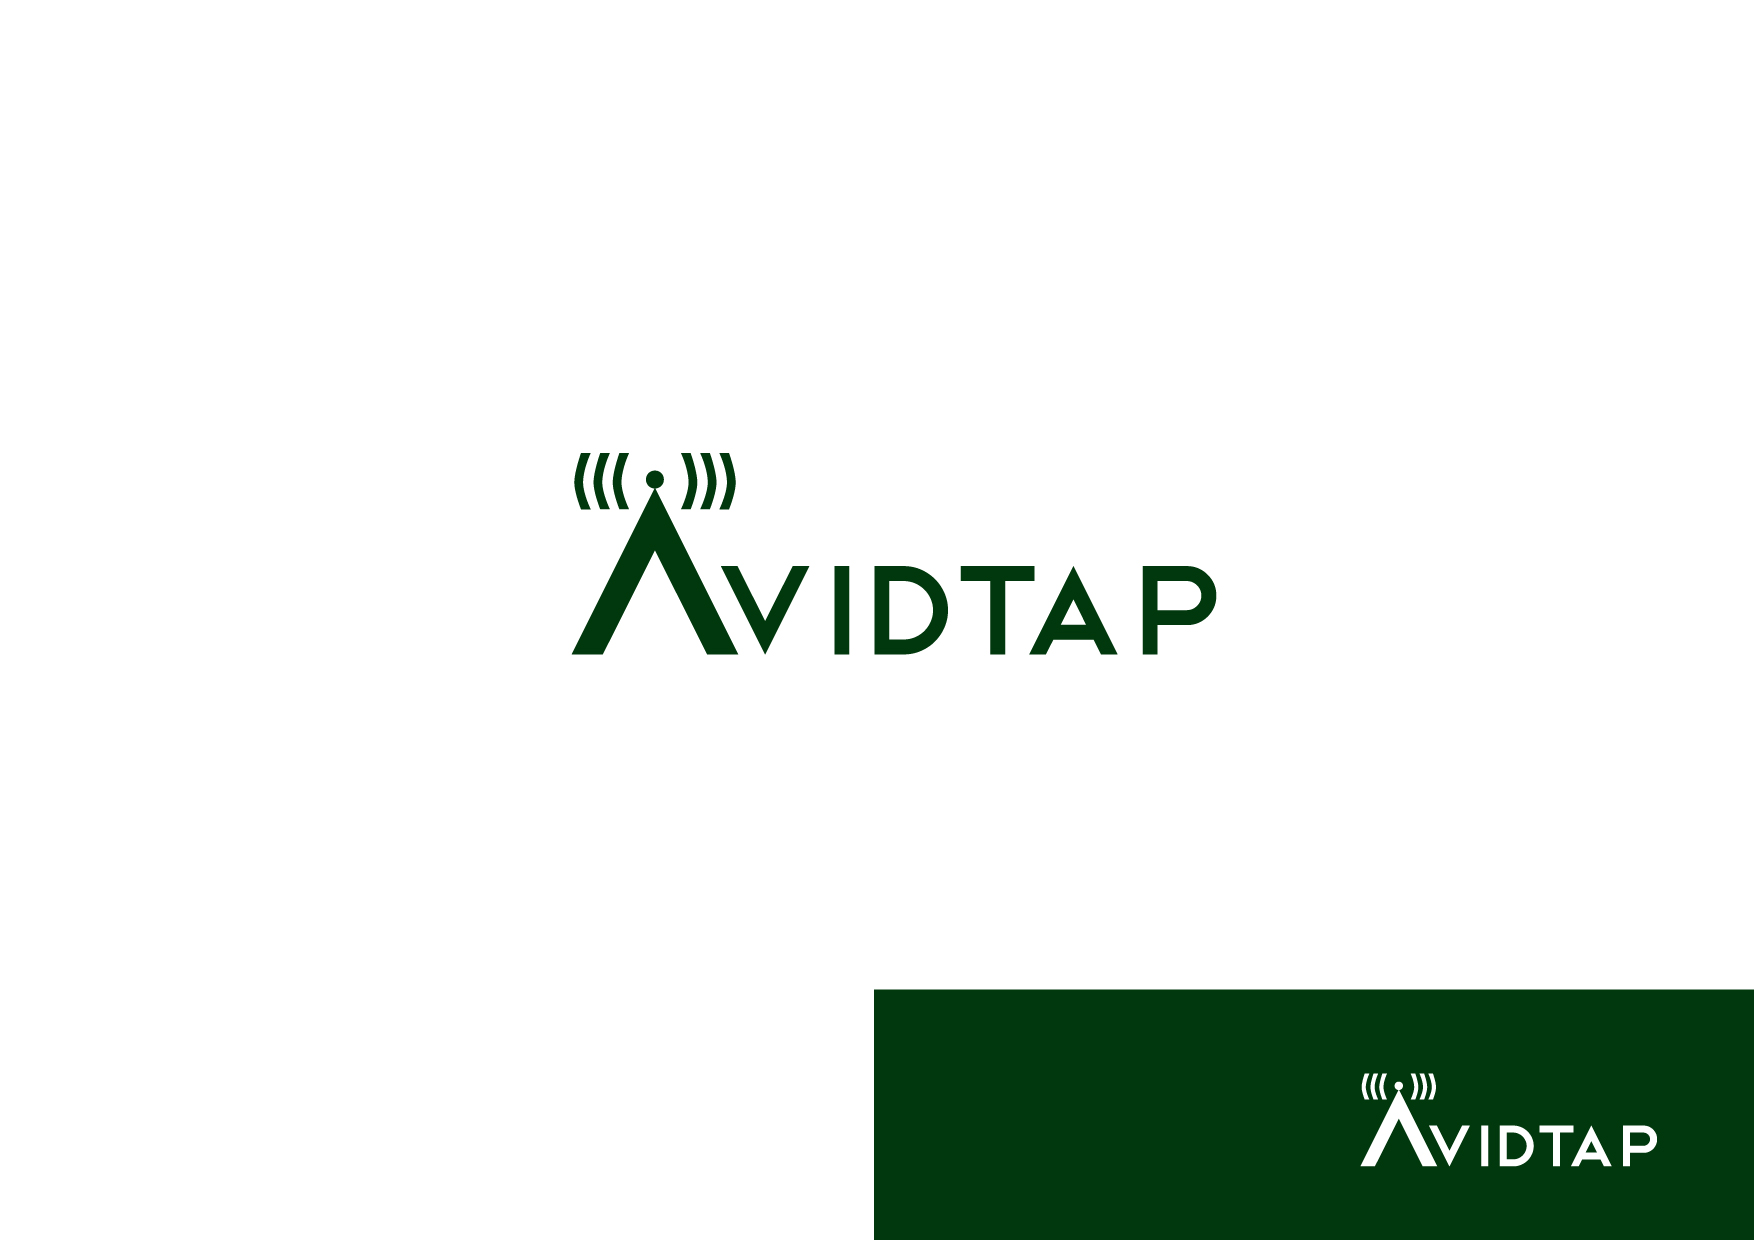 Logo Design by Osi Indra - Entry No. 36 in the Logo Design Contest Imaginative Logo Design for AvidTap.